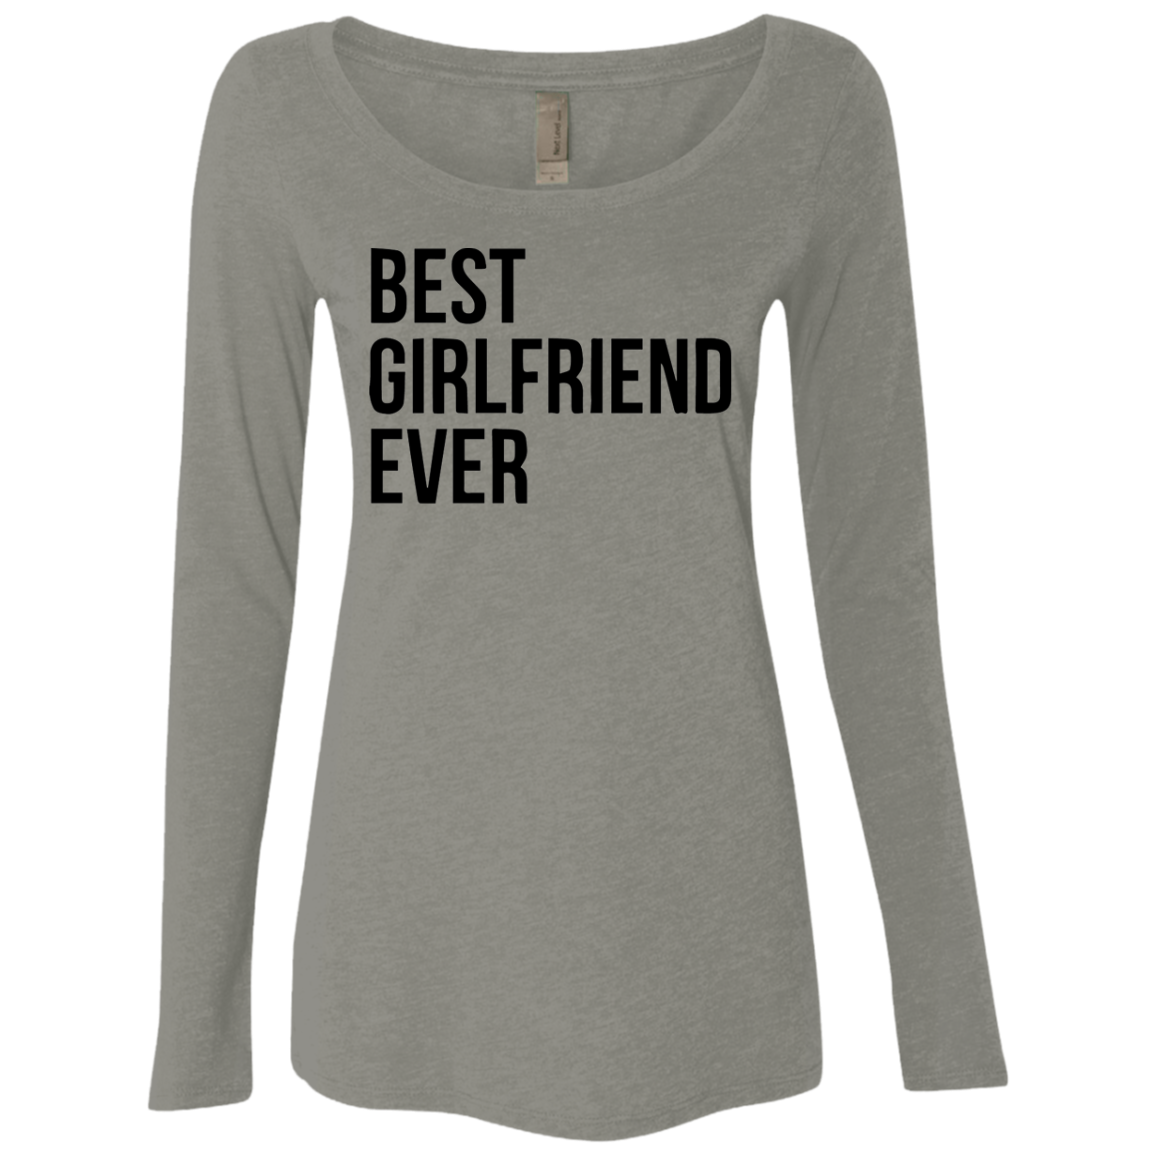 Best Girlfriend Ever Women's Long Sleeve Tee - Trendy Tees